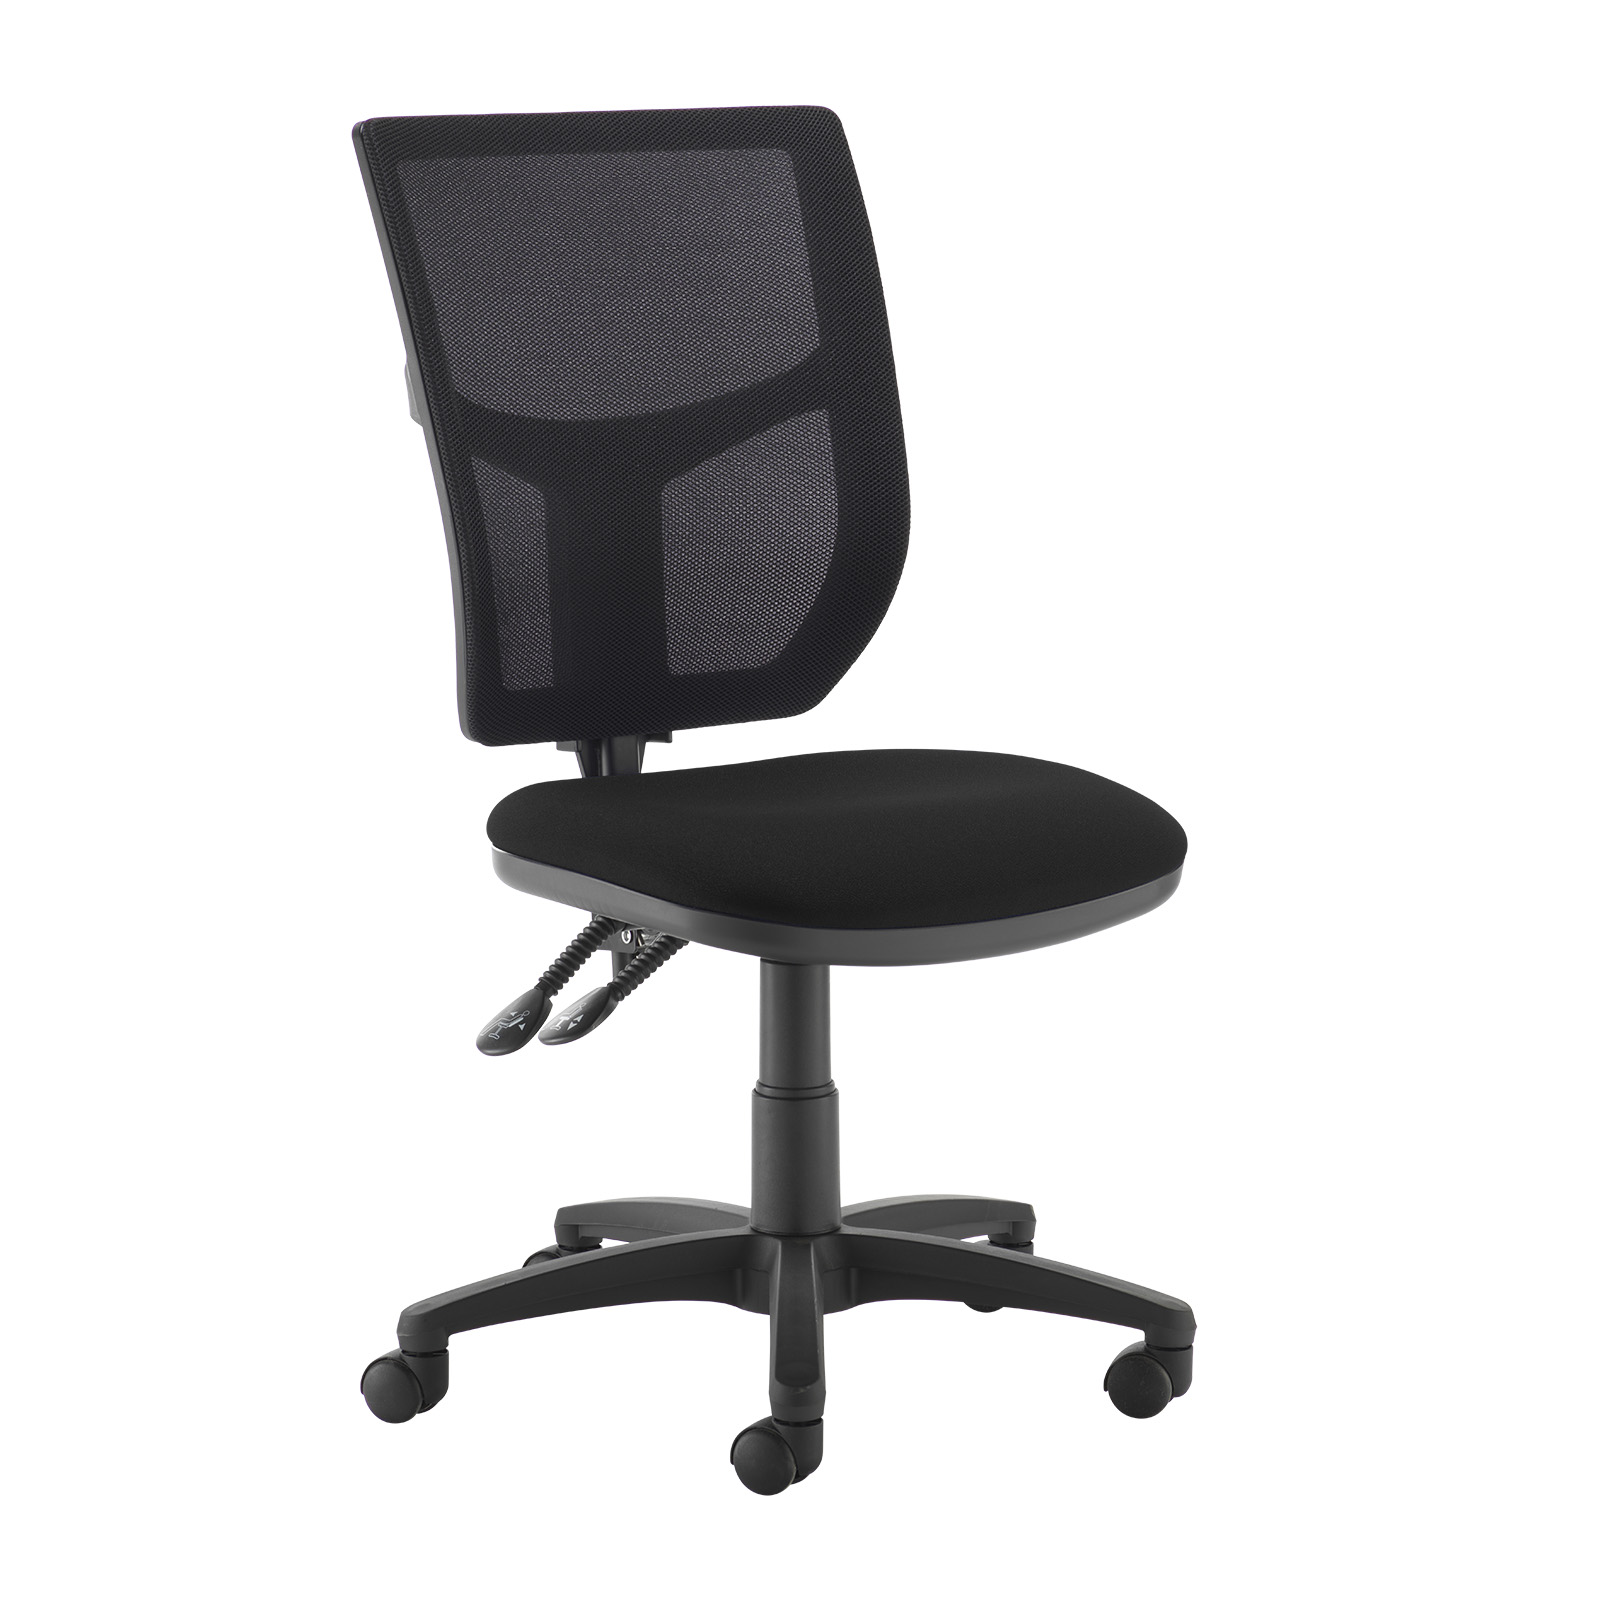 Desk Chairs Altino 2 lever high mesh back operators chair